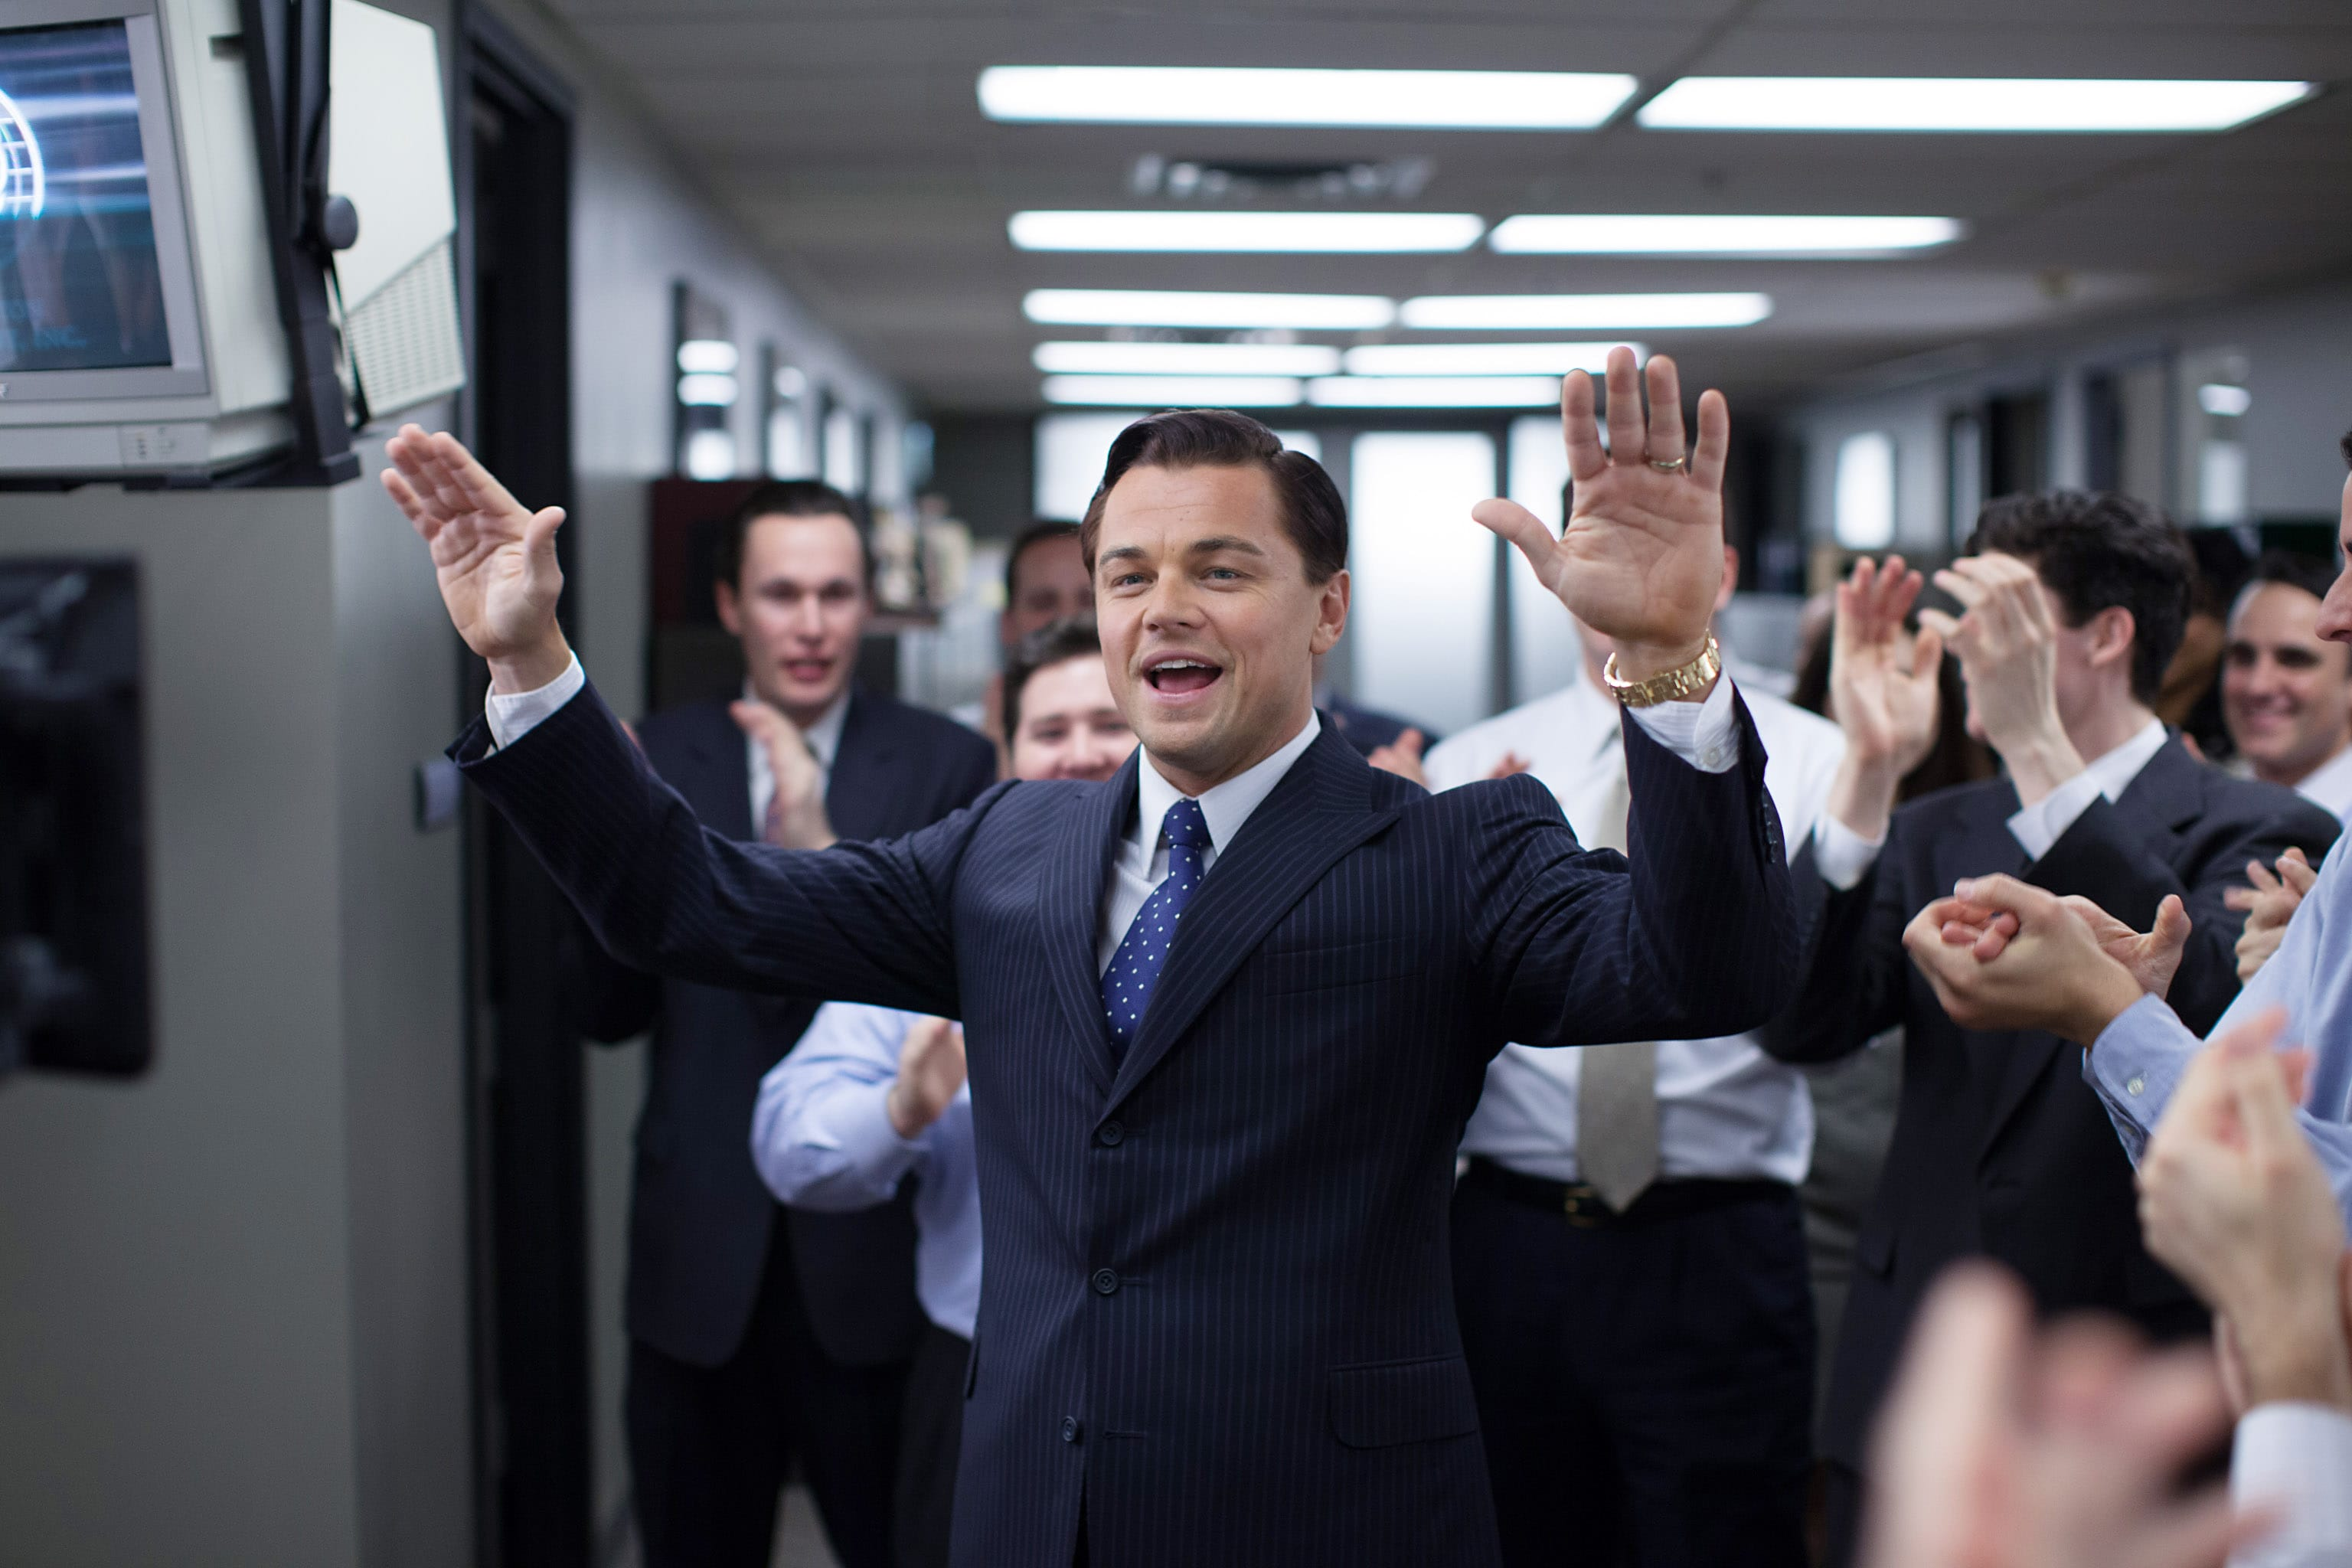 1572861135446_THE WOLF 2013.jpg - The wolf of Wall Street 2013 di Martin Scorsese